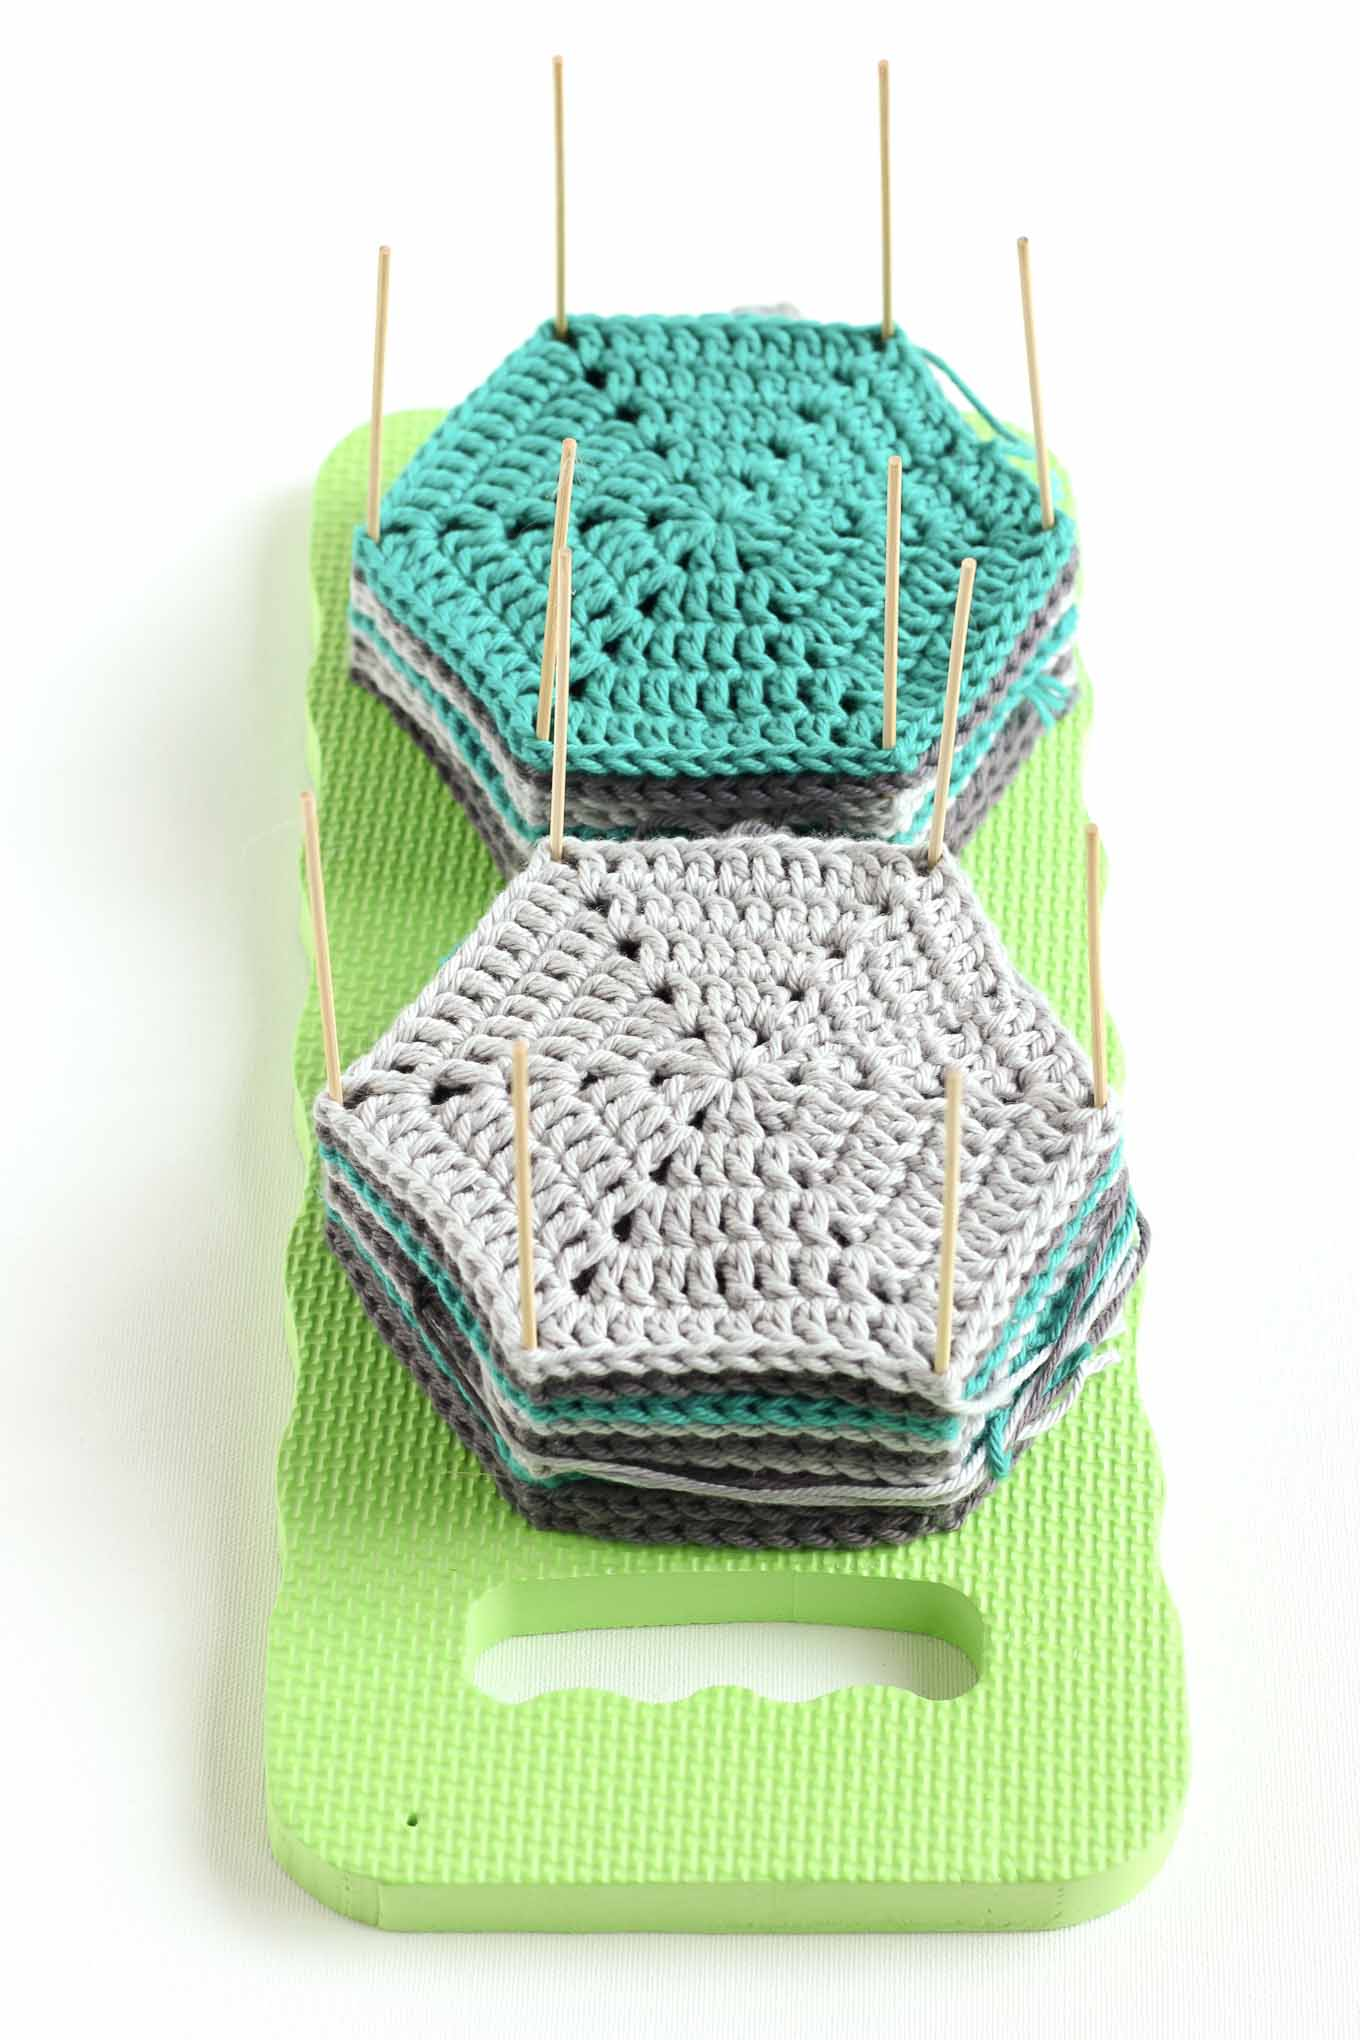 Learn how to block crochet or knit hexagons or granny squares with this incredibly easy and inexpensive DIY blocking board (made from a garden kneeling pad!) Click for full tutorial. | MakeAndDoCrew.com